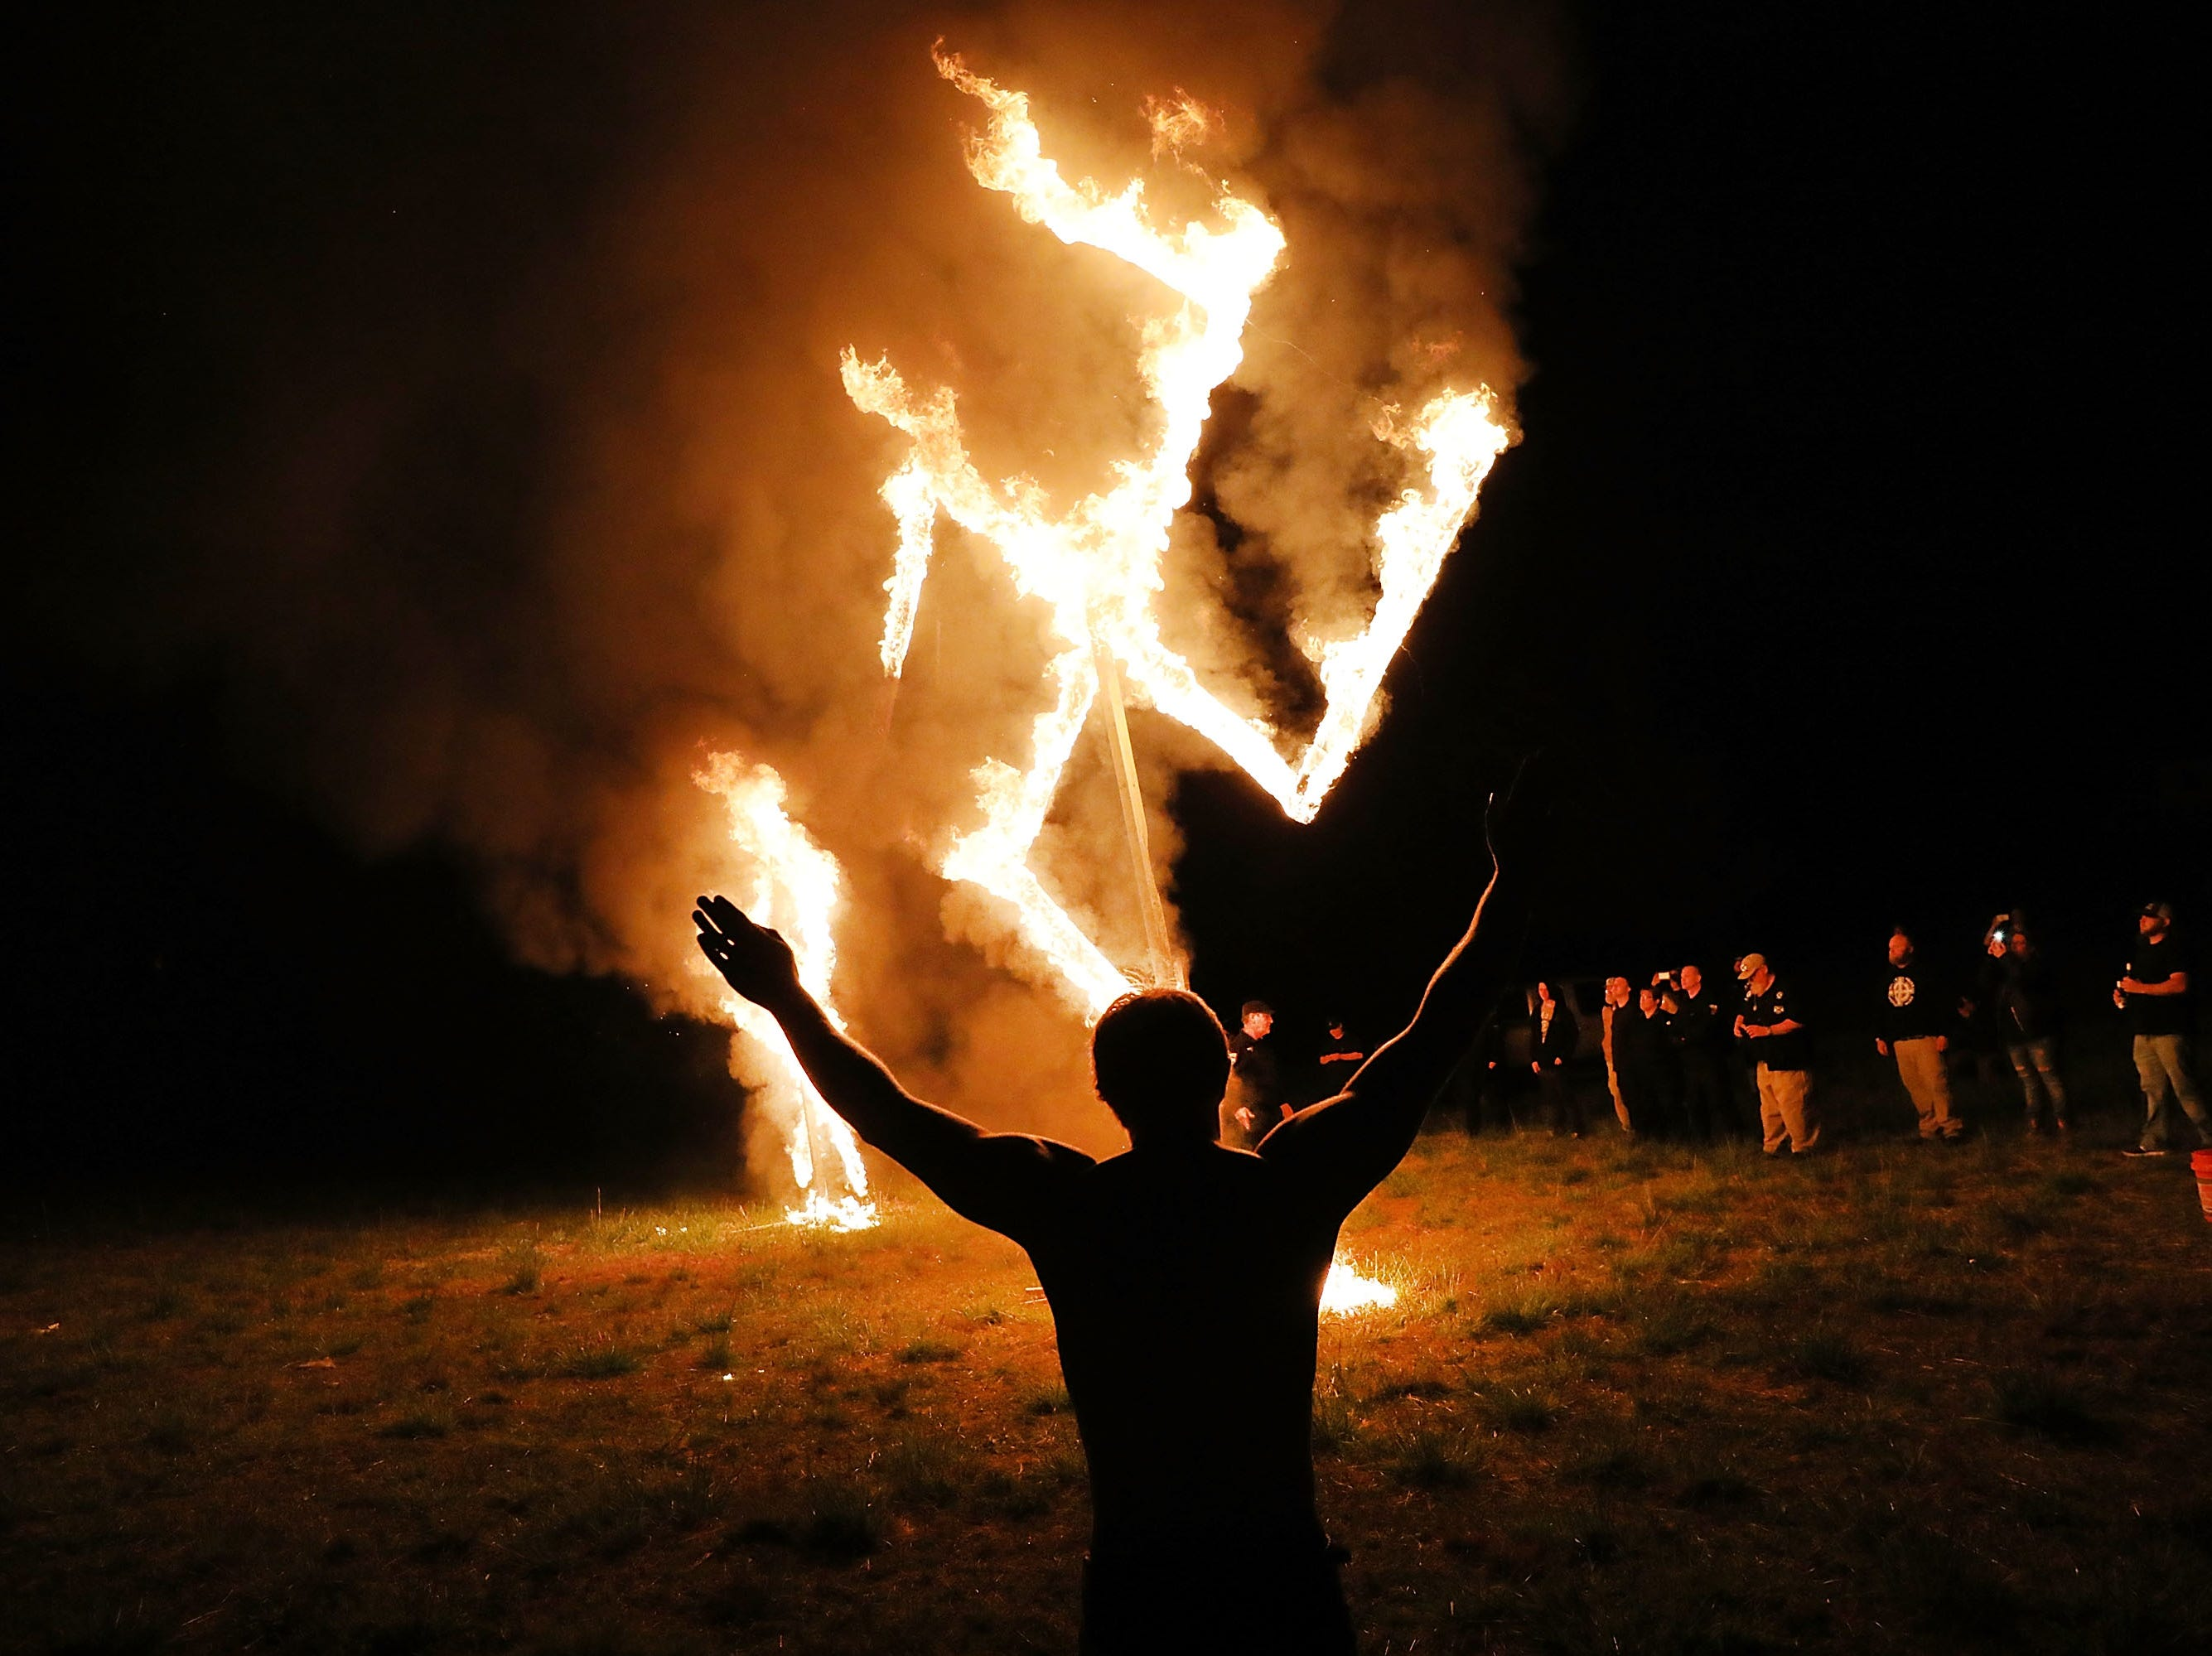 Members  of the National Socialist Movement, one of the largest neo-Nazi groups in the U.S., burn a swastika after a rally on April 21, 2018, in Draketown, Georgia. Community members had opposed the rally in Newnan and came out to embrace racial unity in the small Georgia town. Fearing a repeat of the violence that broke out after Charlottesville, hundreds of police officers were stationed in the town during the rally in an attempt to keep the anti racist protesters and neo-Nazi groups separated.